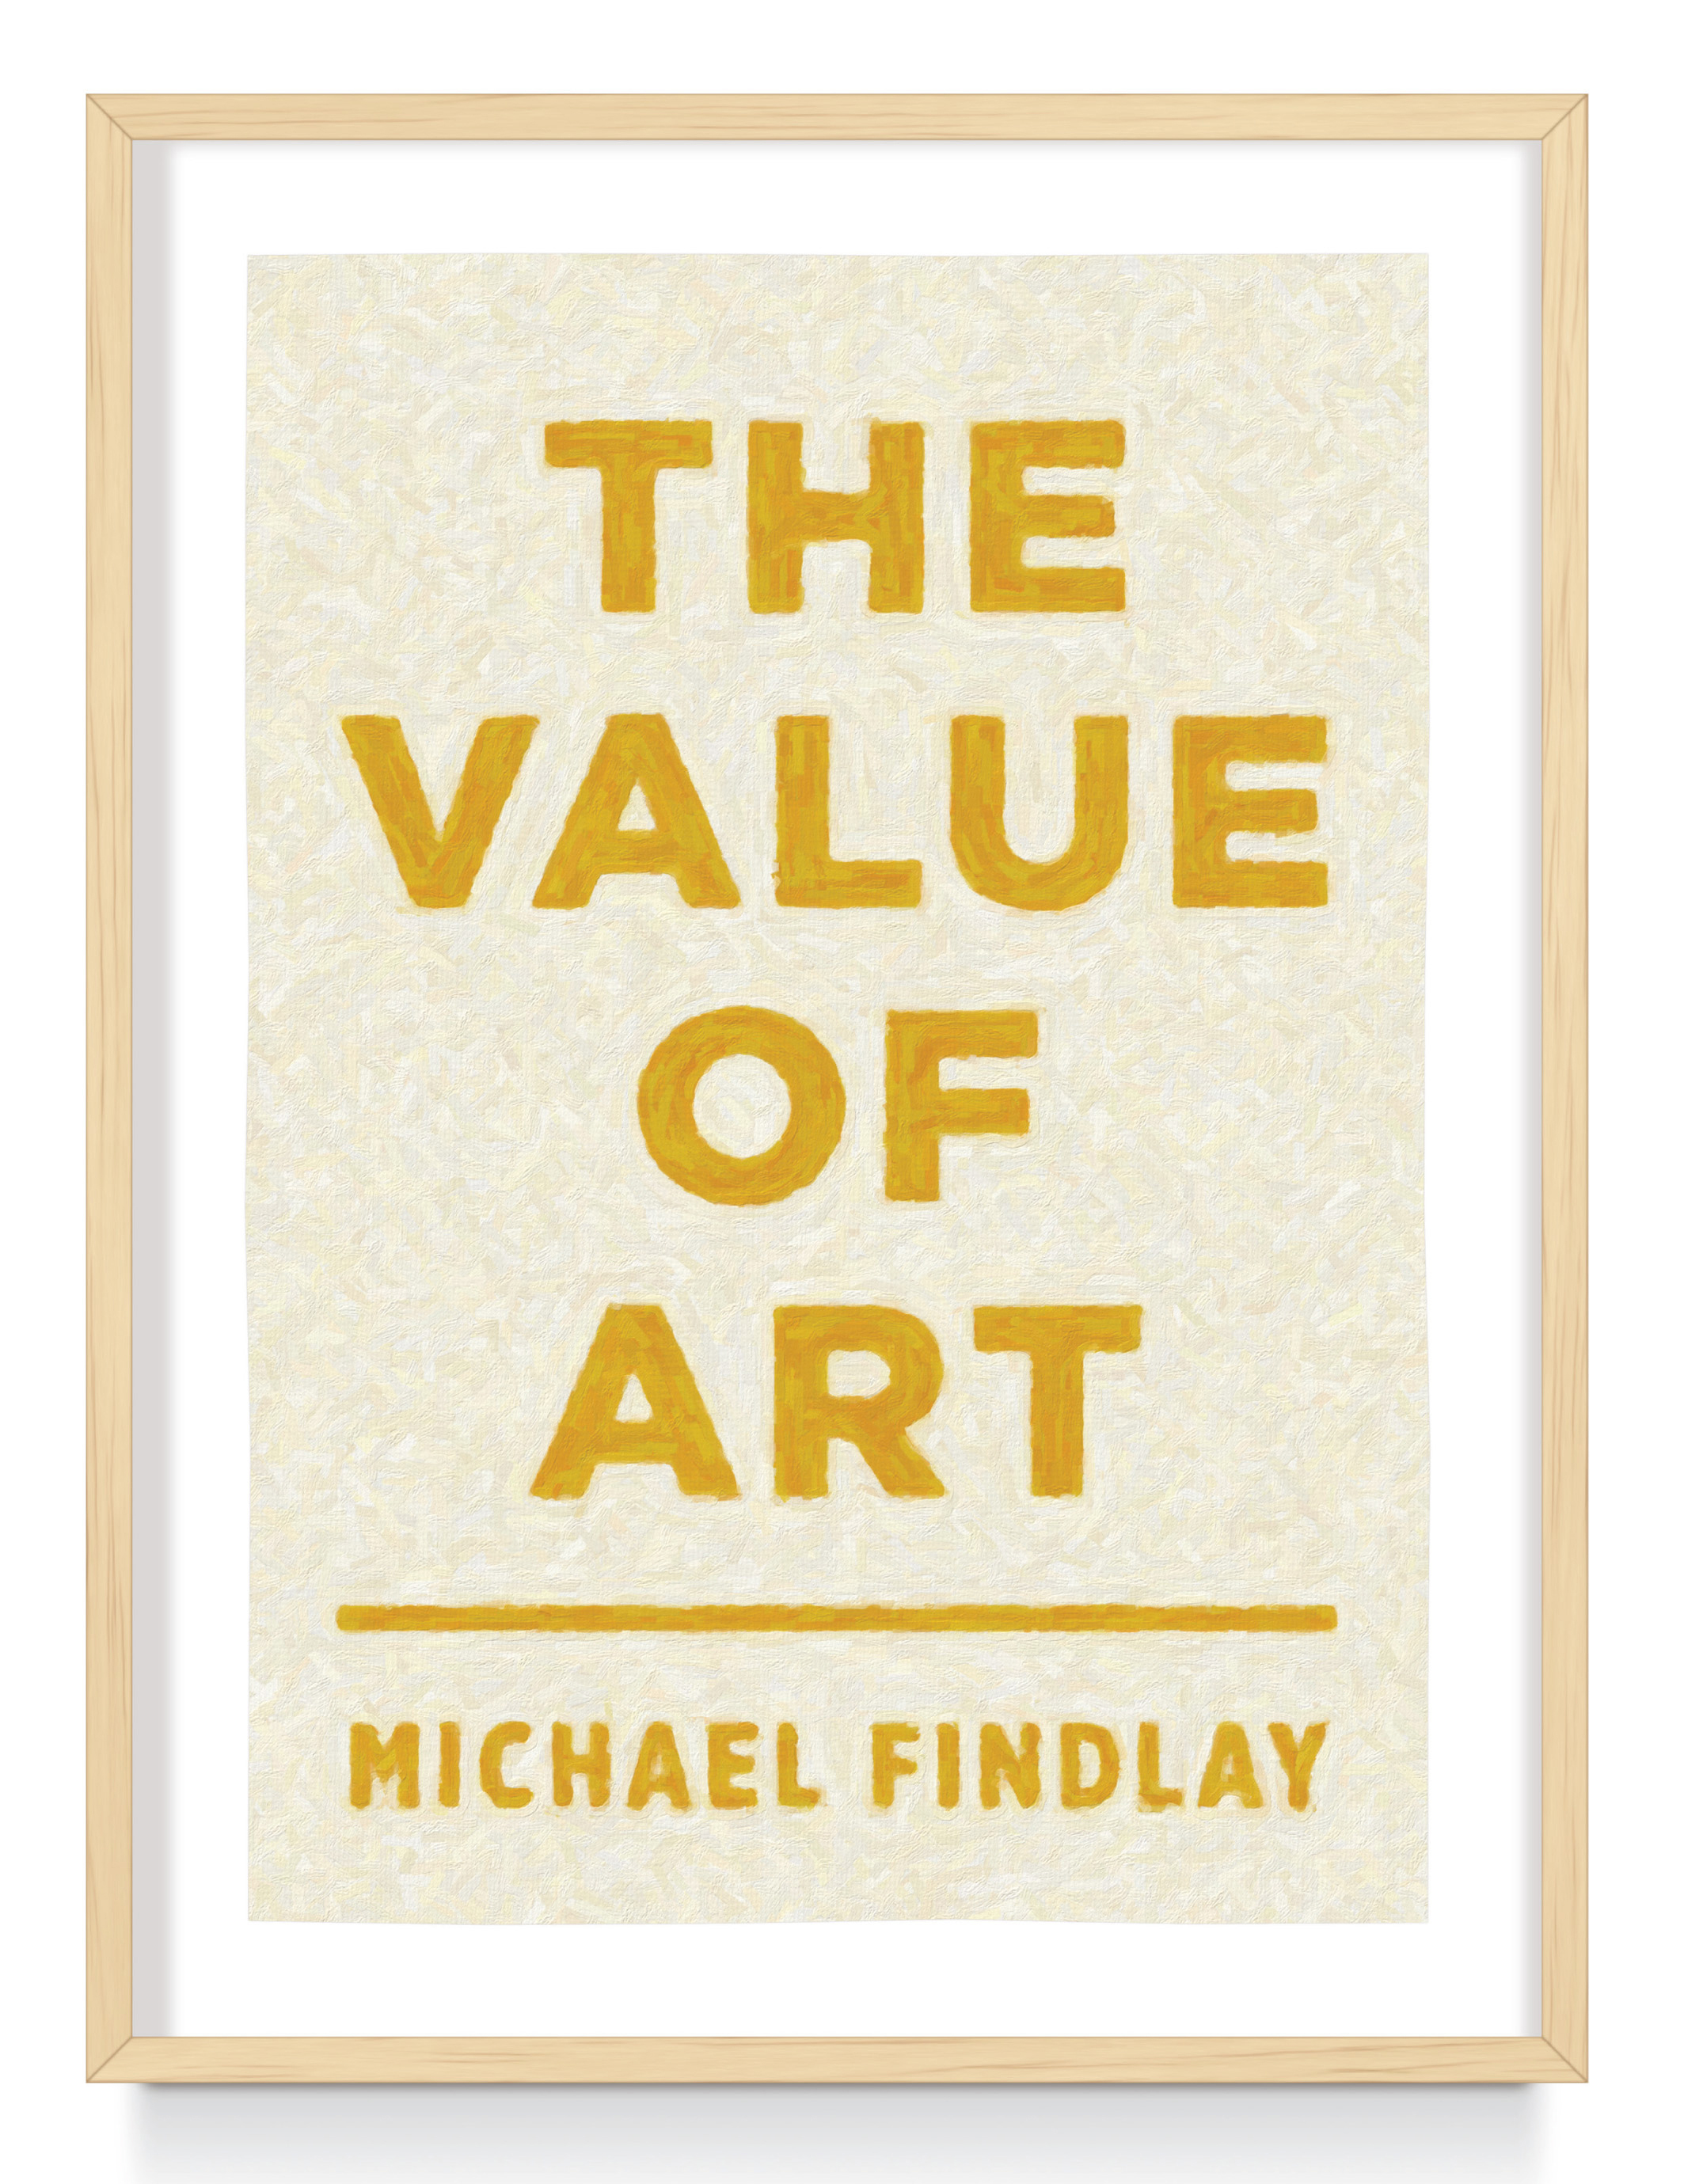 Michael-Findlay-The-Value-of-Art